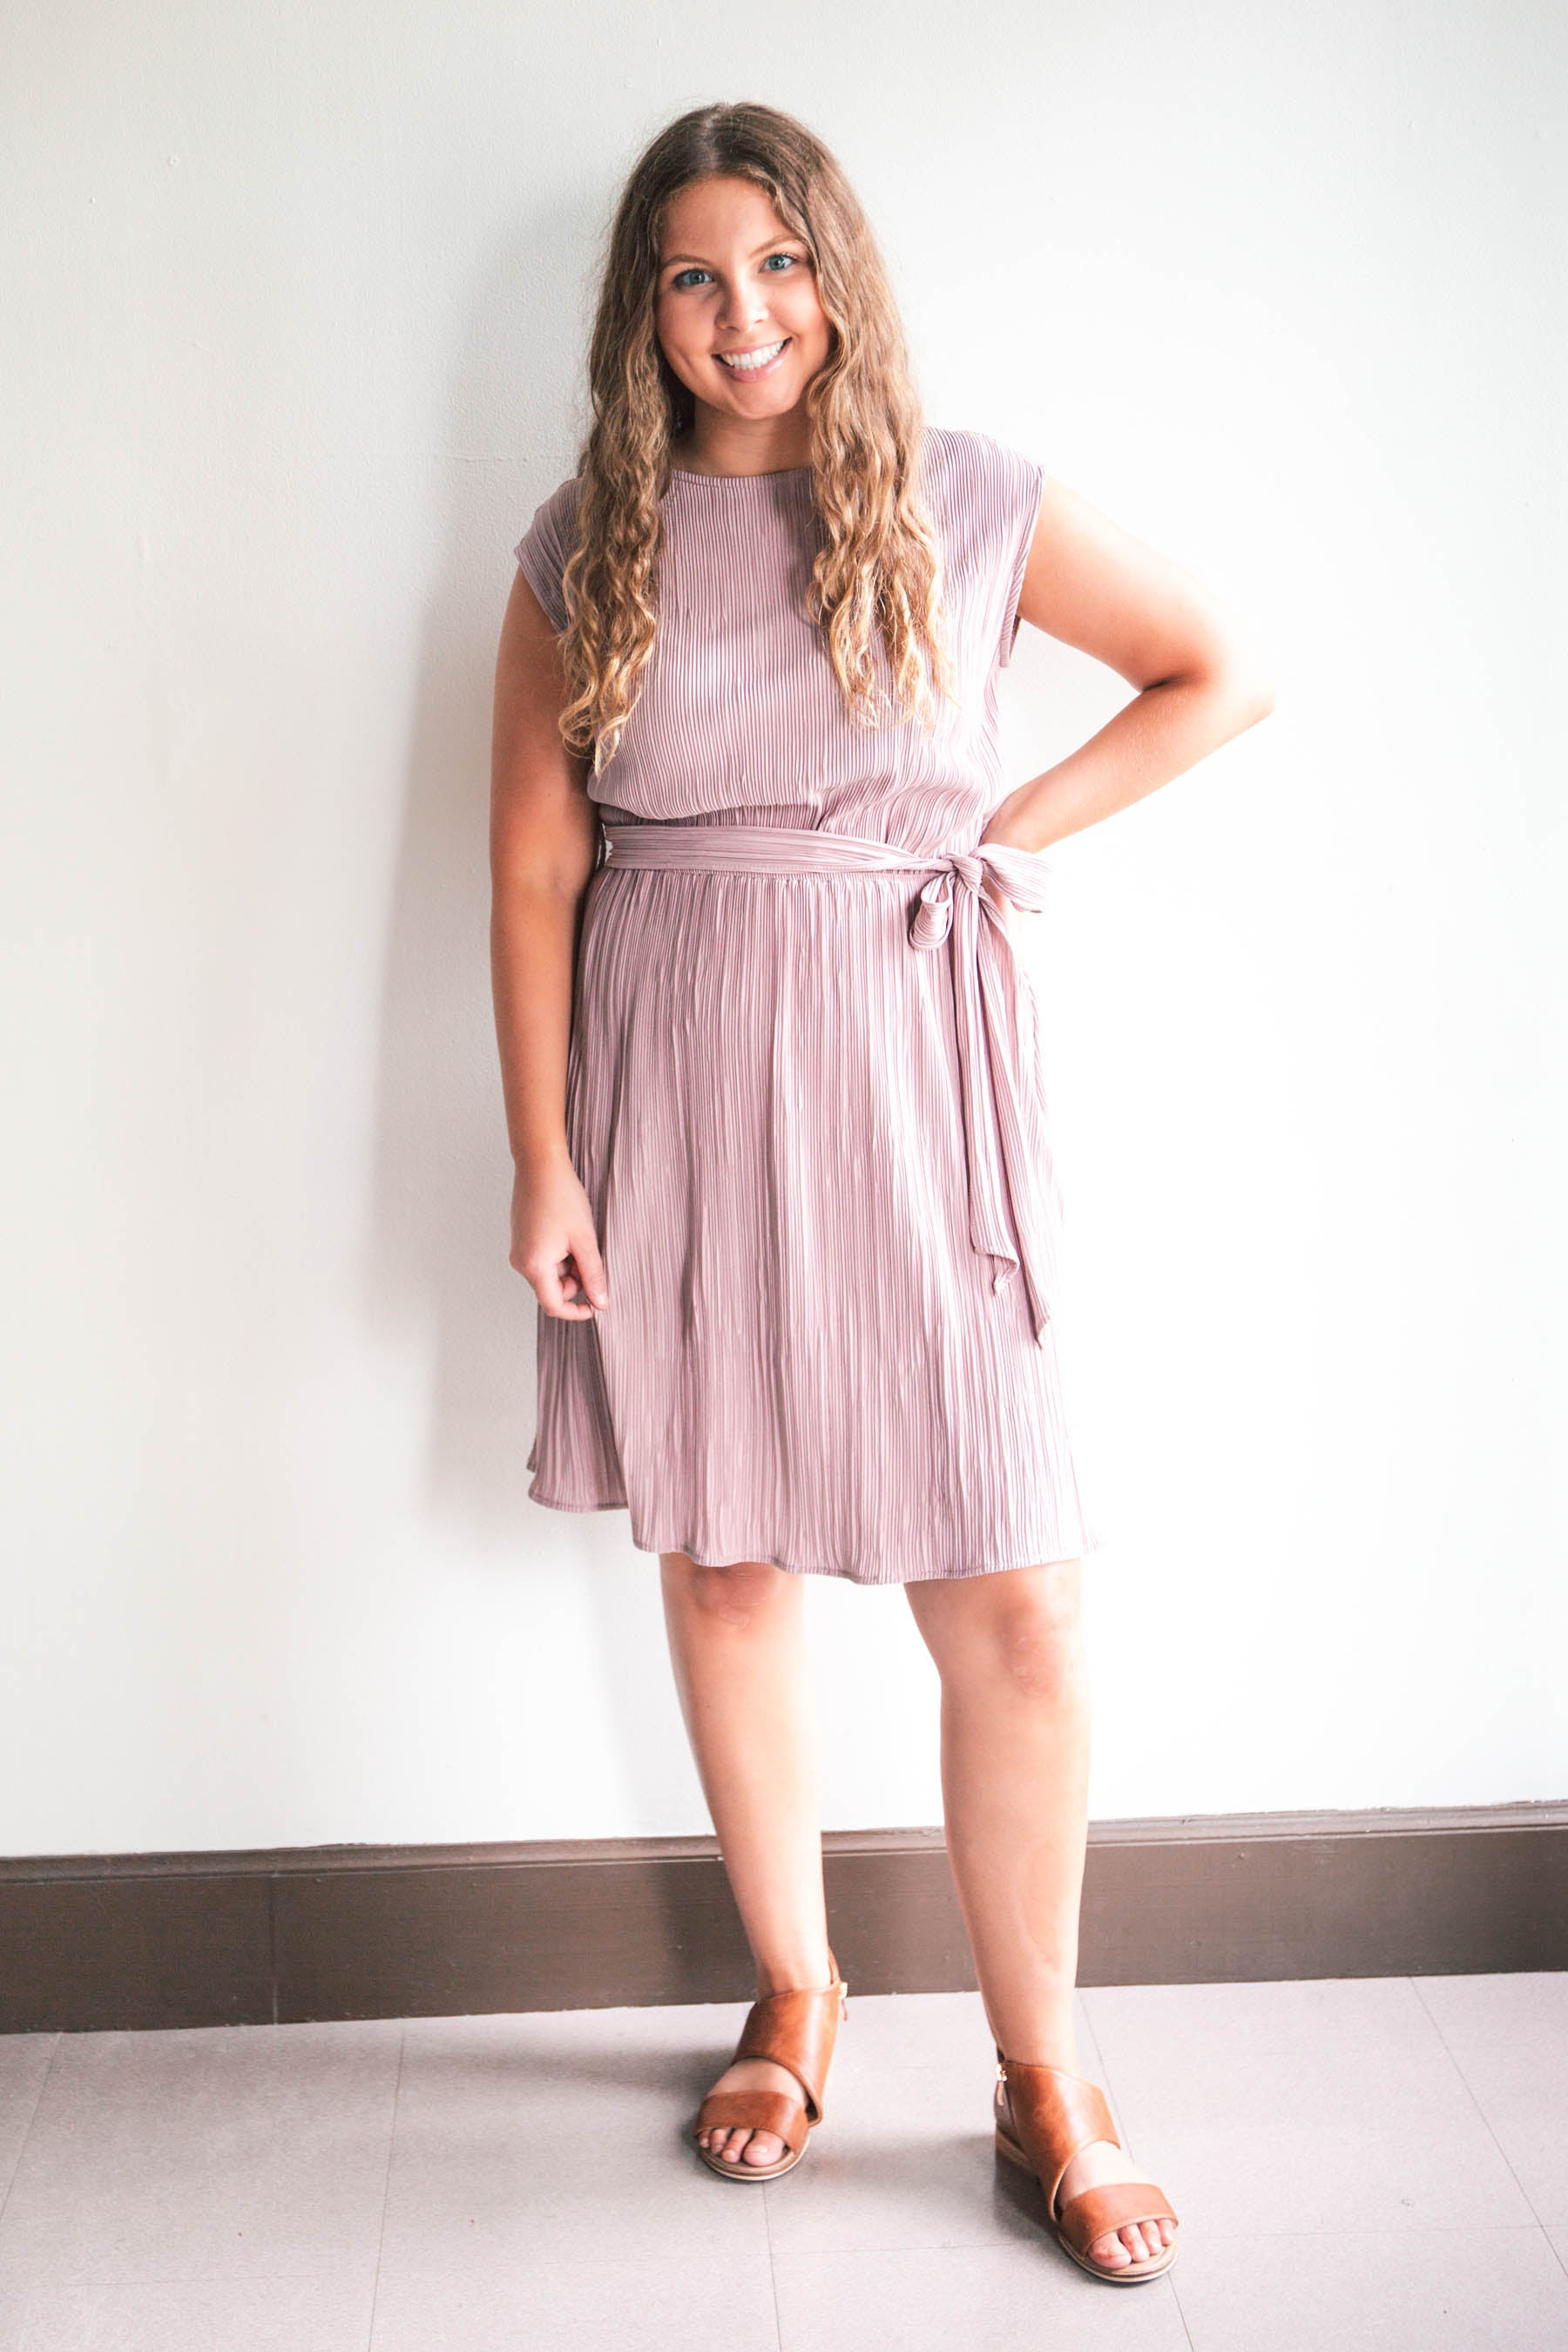 Grace Sleeveless Dress (FINAL SALE)